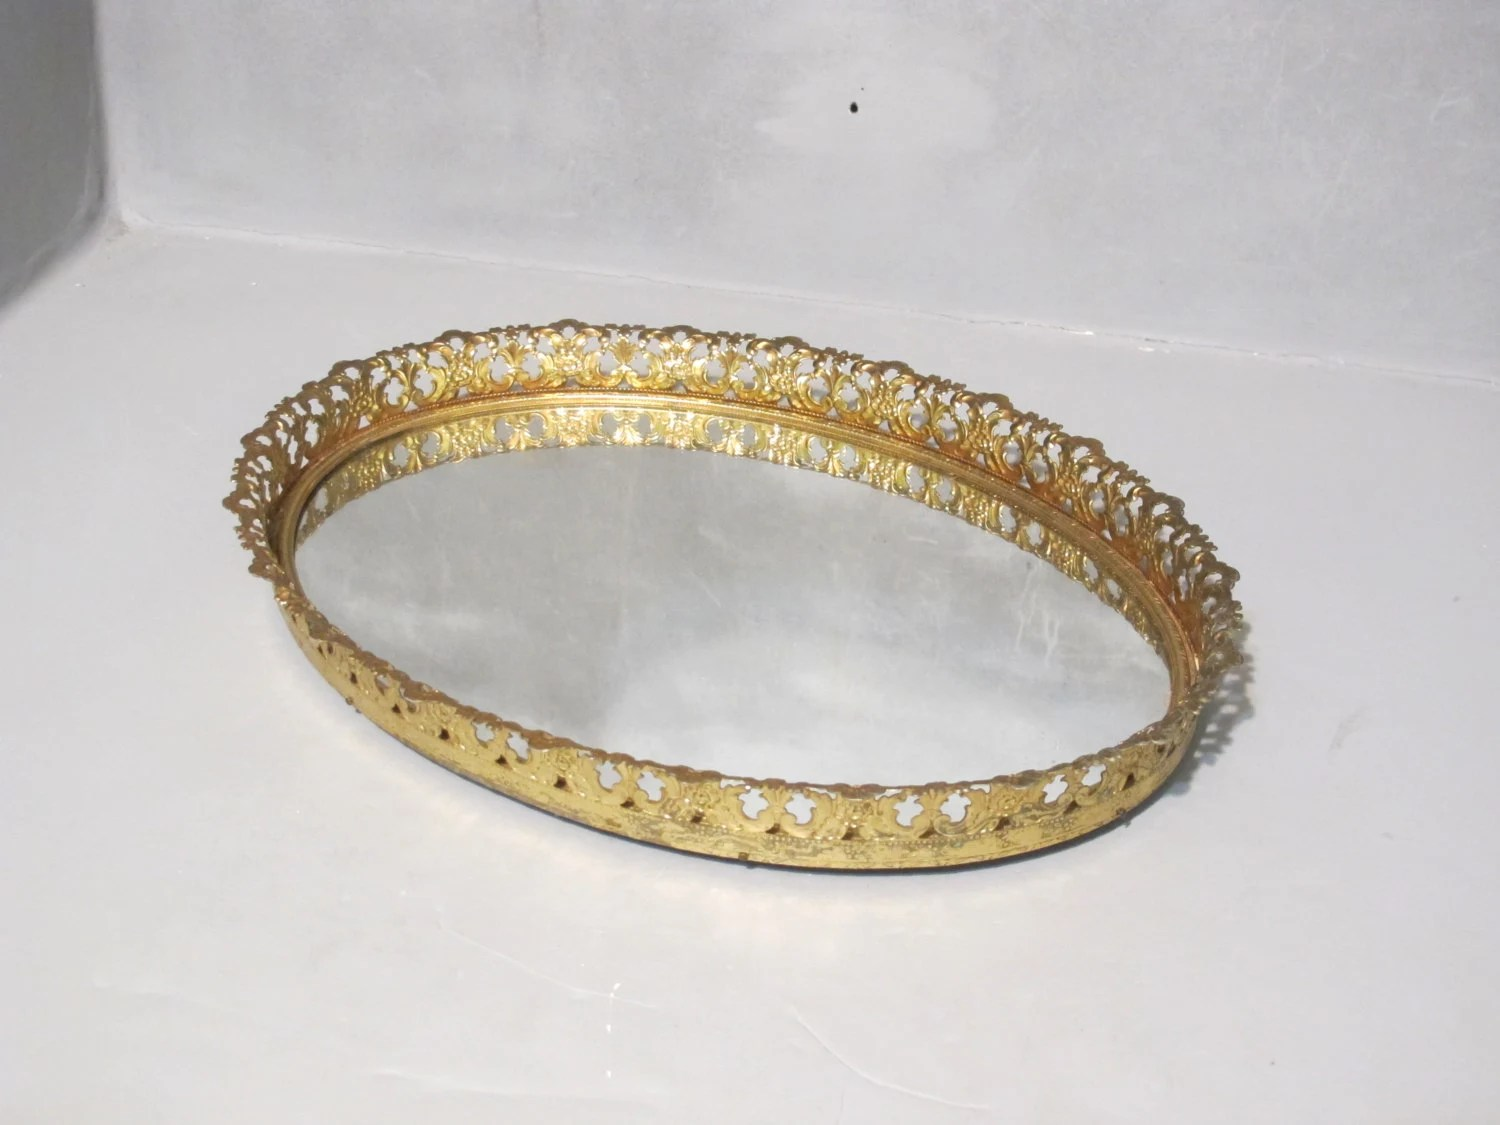 Vintage Oval Vanity Mirror Tray / Faux Brass Gold Plated